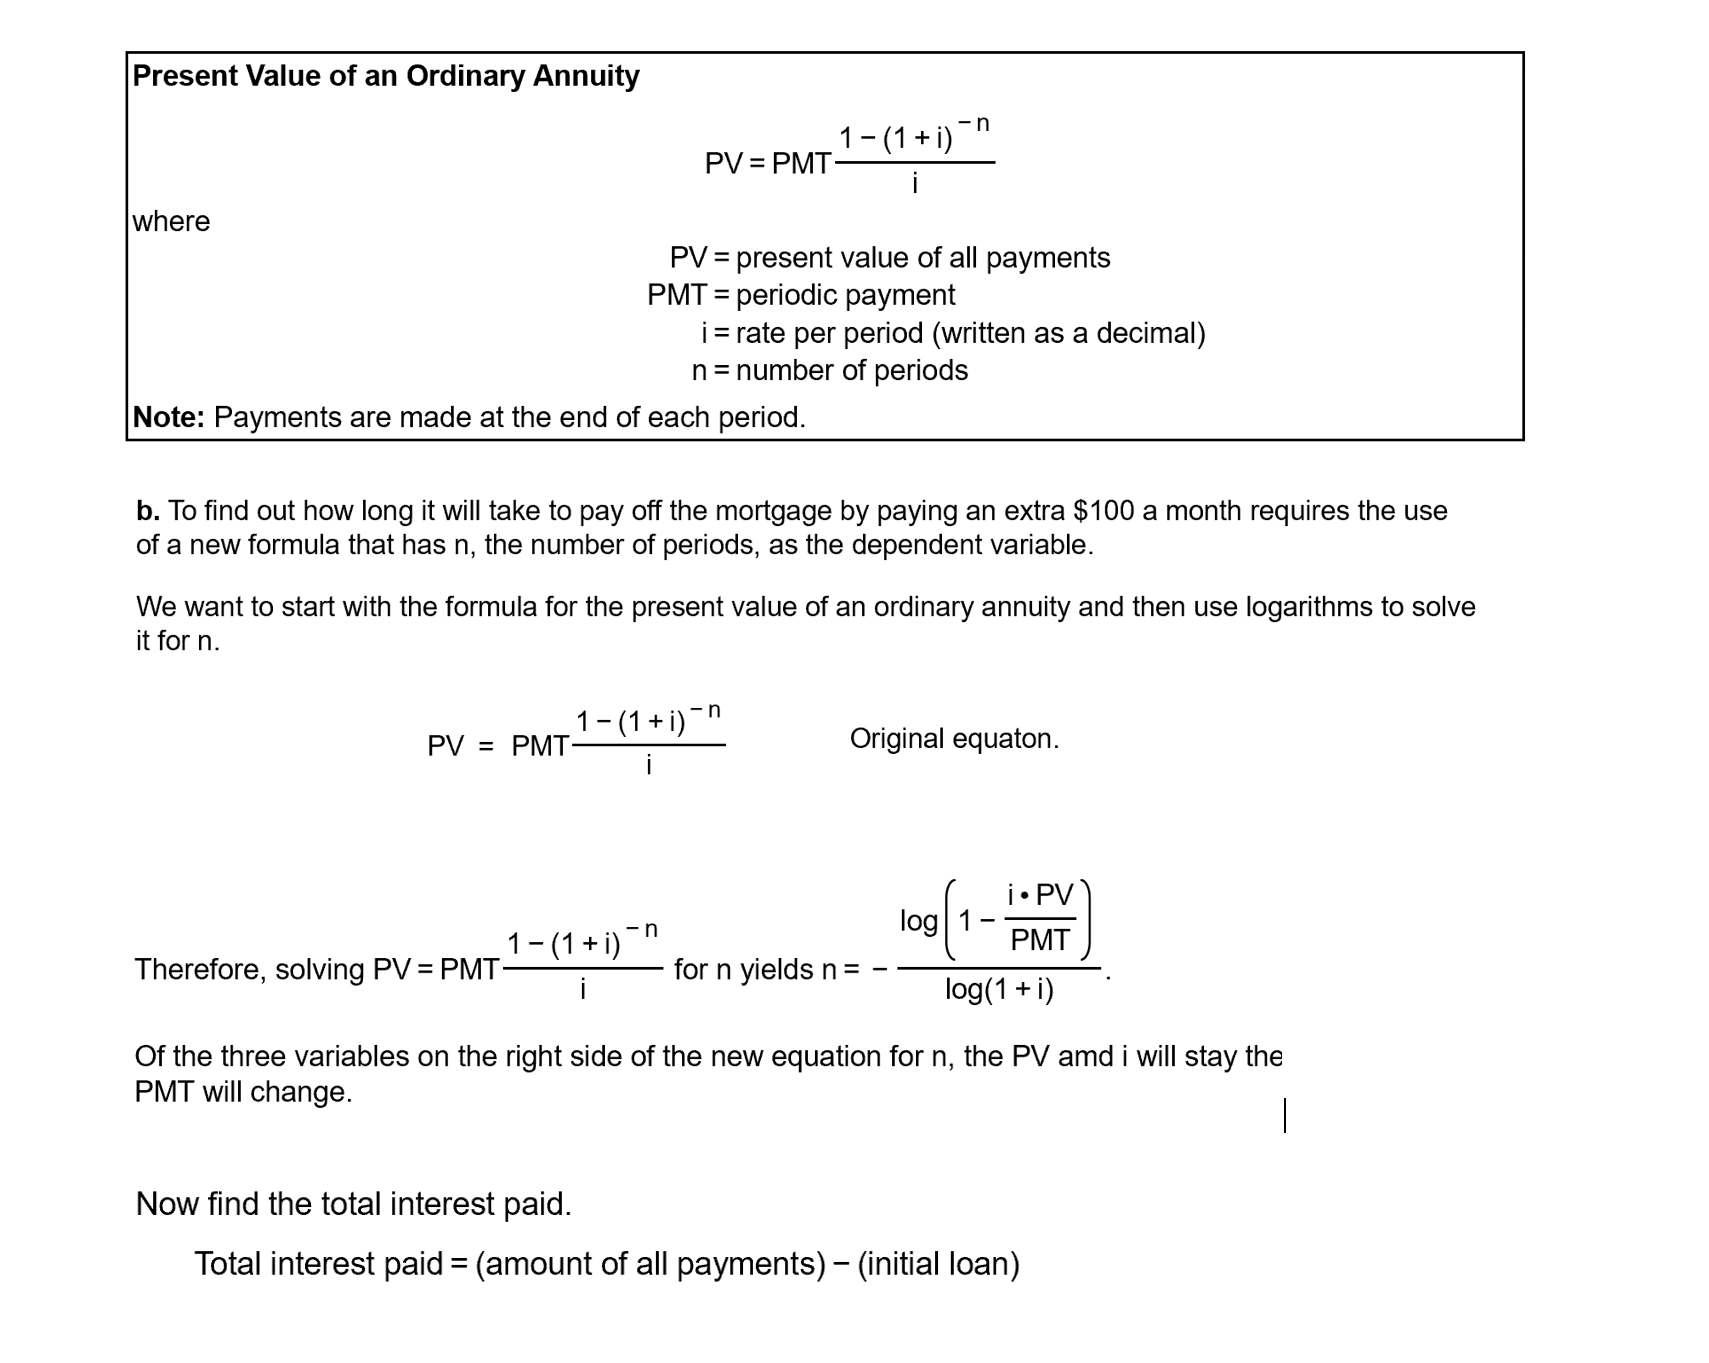 """Present Value of an Ordinary Annuity -n 1-(1 + i) PV = PMT- where PV = present value of all payments PMT = periodic payment i= rate per period (written as a decimal) n= number of periods %3D %3D Note: Payments are made at the end of each period. b. To find out how long it will take to pay off the mortgage by paying an extra $100 a month requires the use of a new formula that has n, the number of periods, as the dependent variable. We want to start with the formula for the present value of an ordinary annuity and then use logarithms to solve it for n. 1-(1+ i) -n PV = PMT: Original equaton. i• PV log 1 1-(1+ i)"""" PMT Therefore, solving PV = PMT for n yields n= log(1 + i) Of the three variables on the right side of the new equation for n, the PV amd i will stay the PMT will change. Now find the total interest paid. Total interest paid = (amount of all payments) – (initial loan)"""